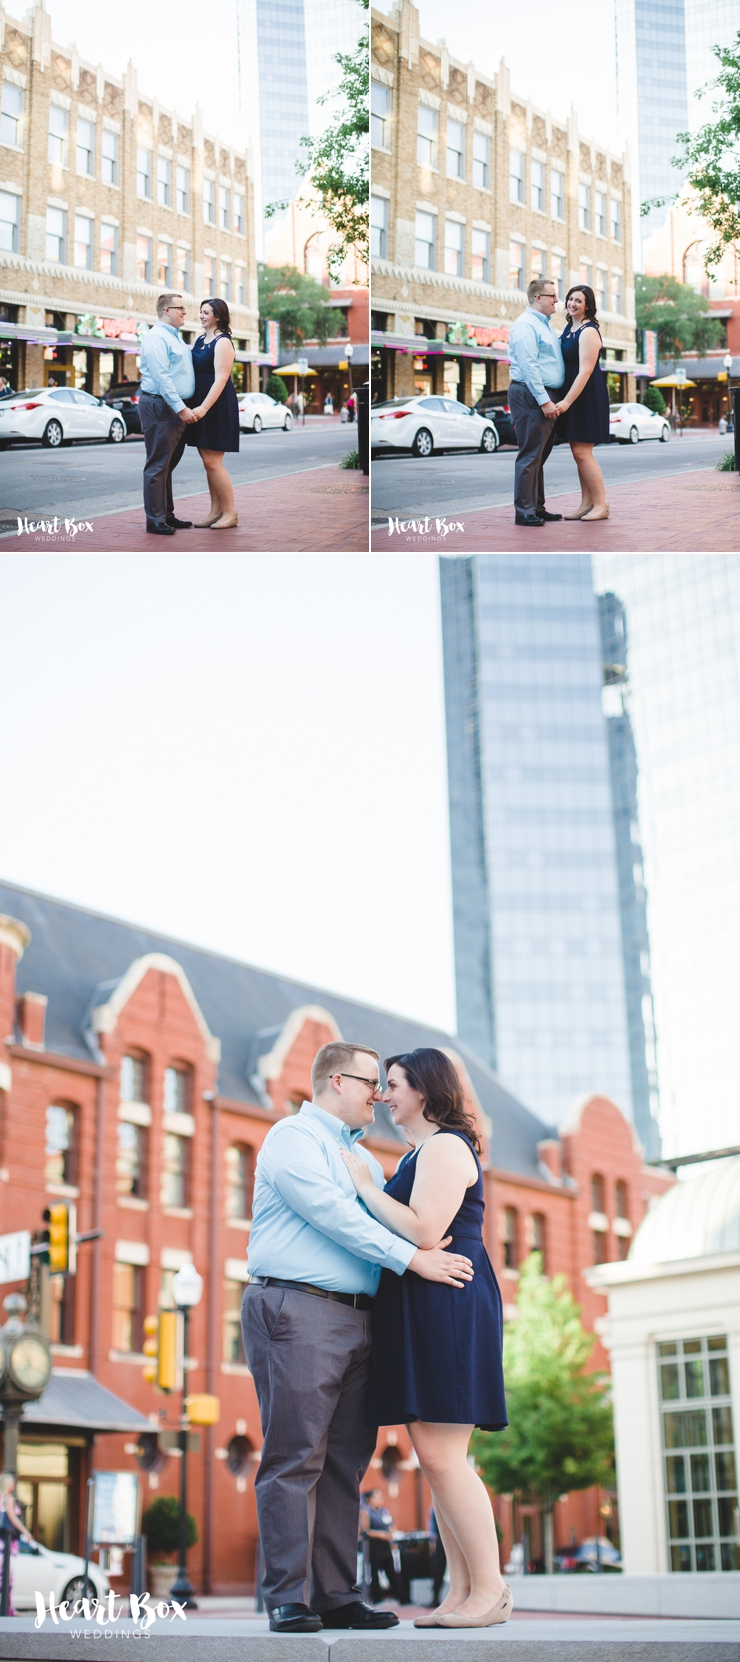 Danielle + Aaron Engagement Blog Collages 4.jpg